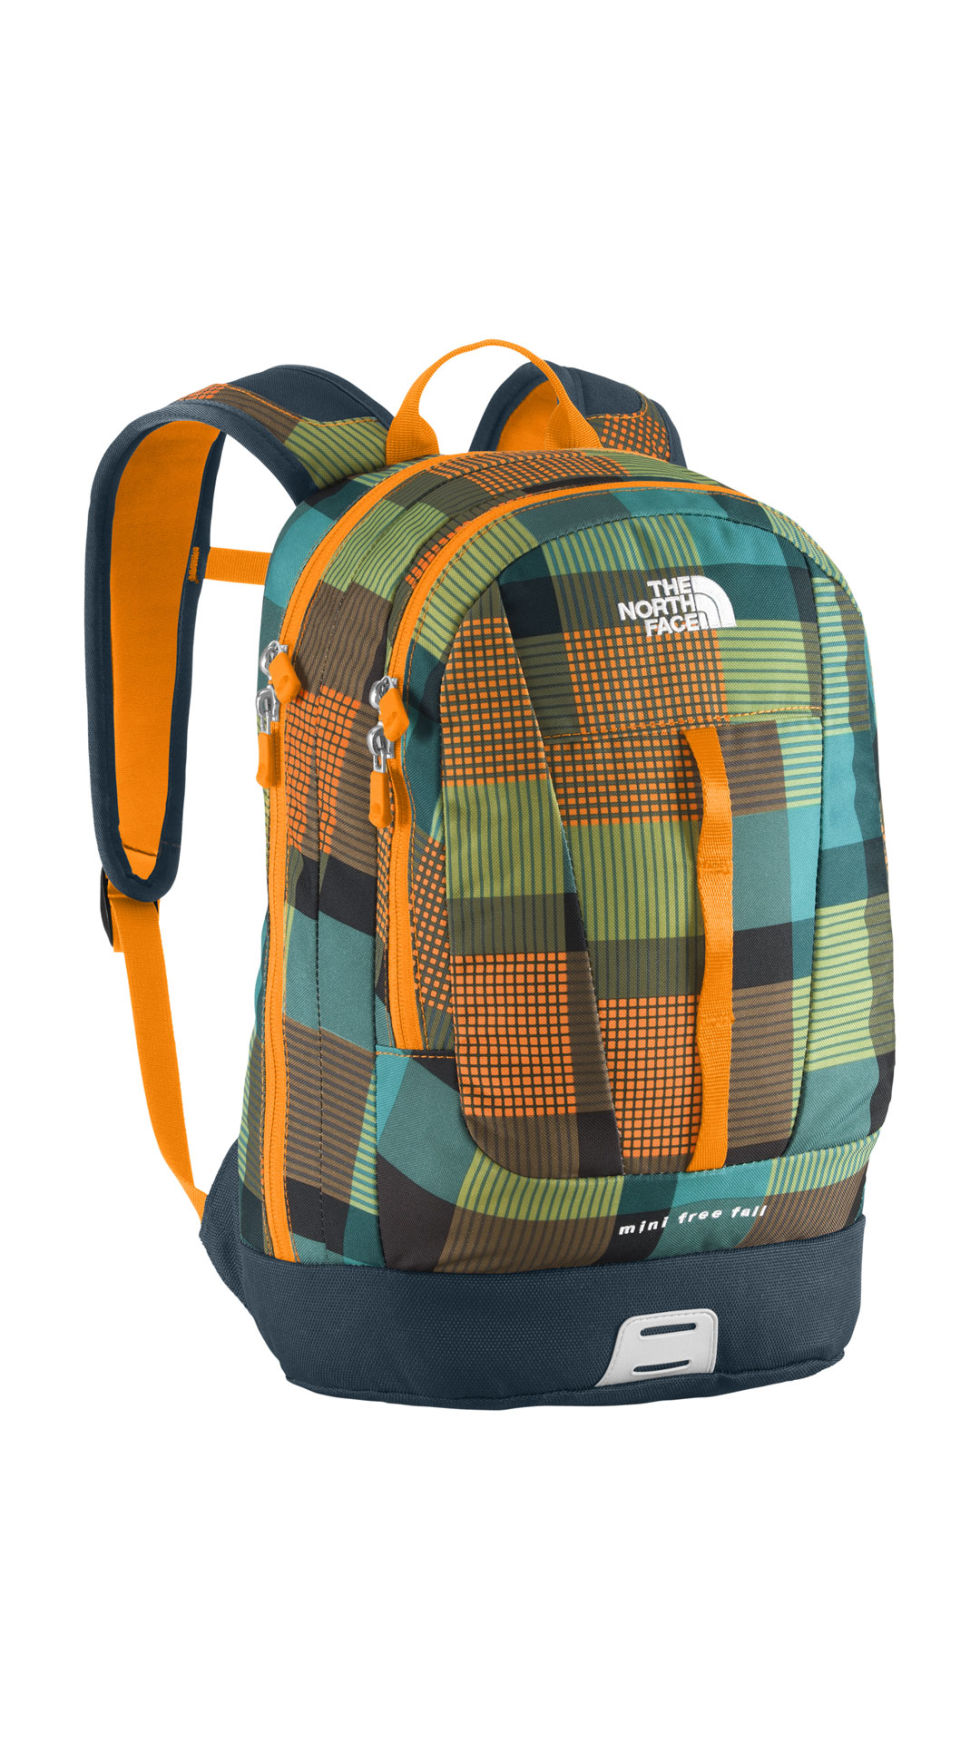 Best Backpack Brands For School rCYWdAvj